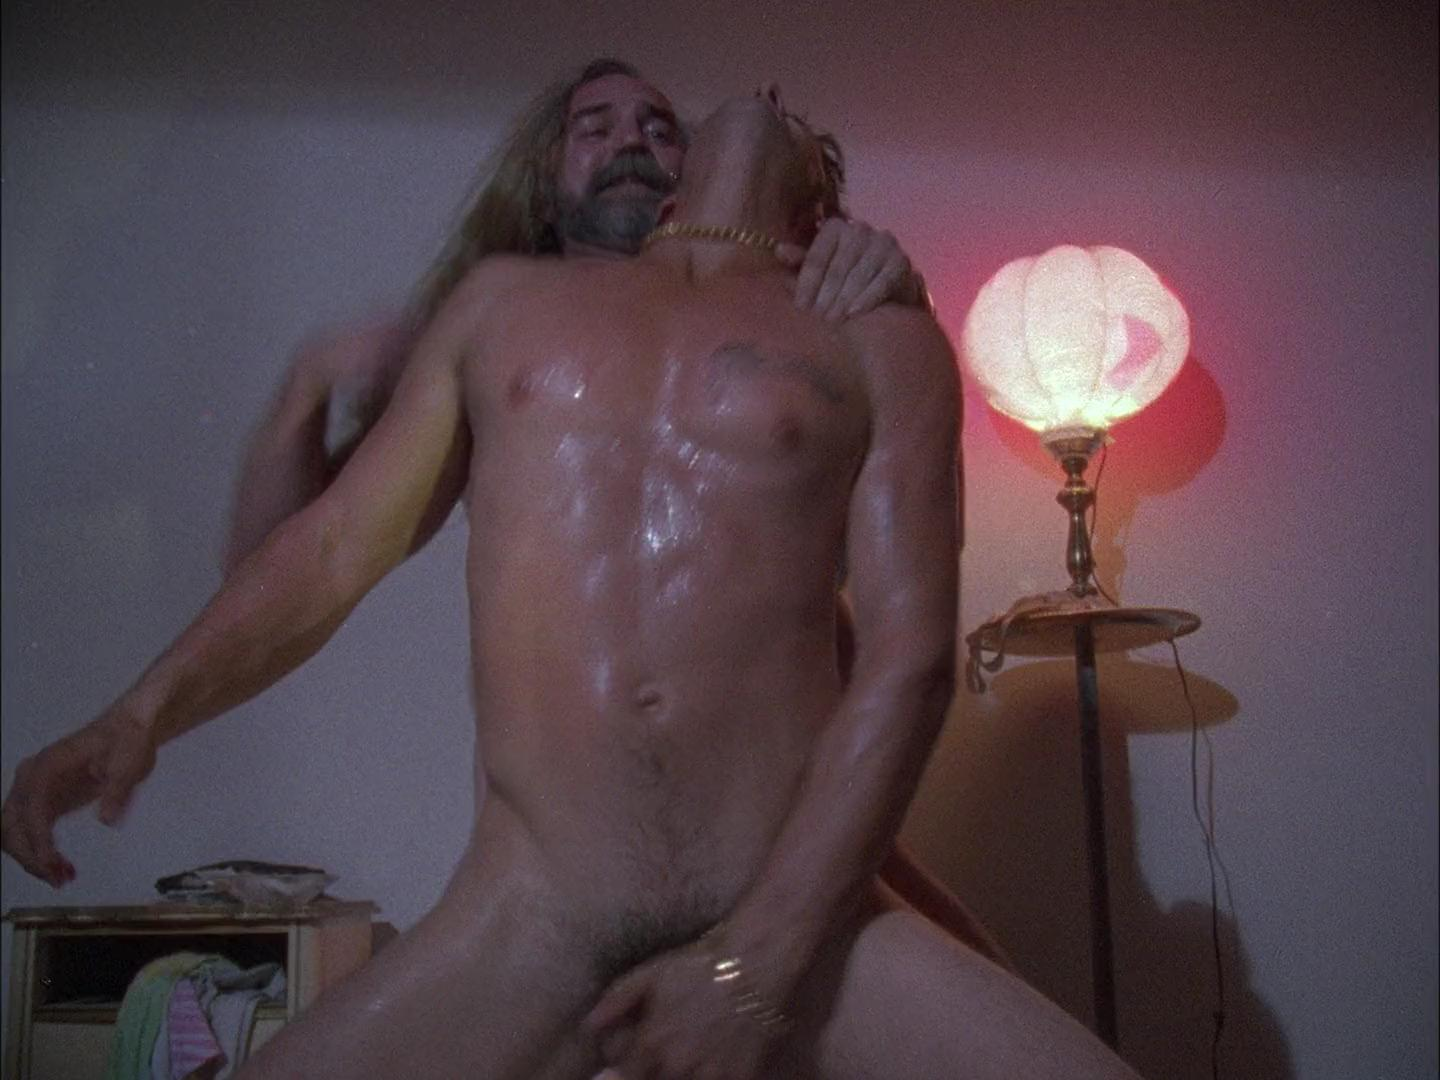 Hustler fully erect